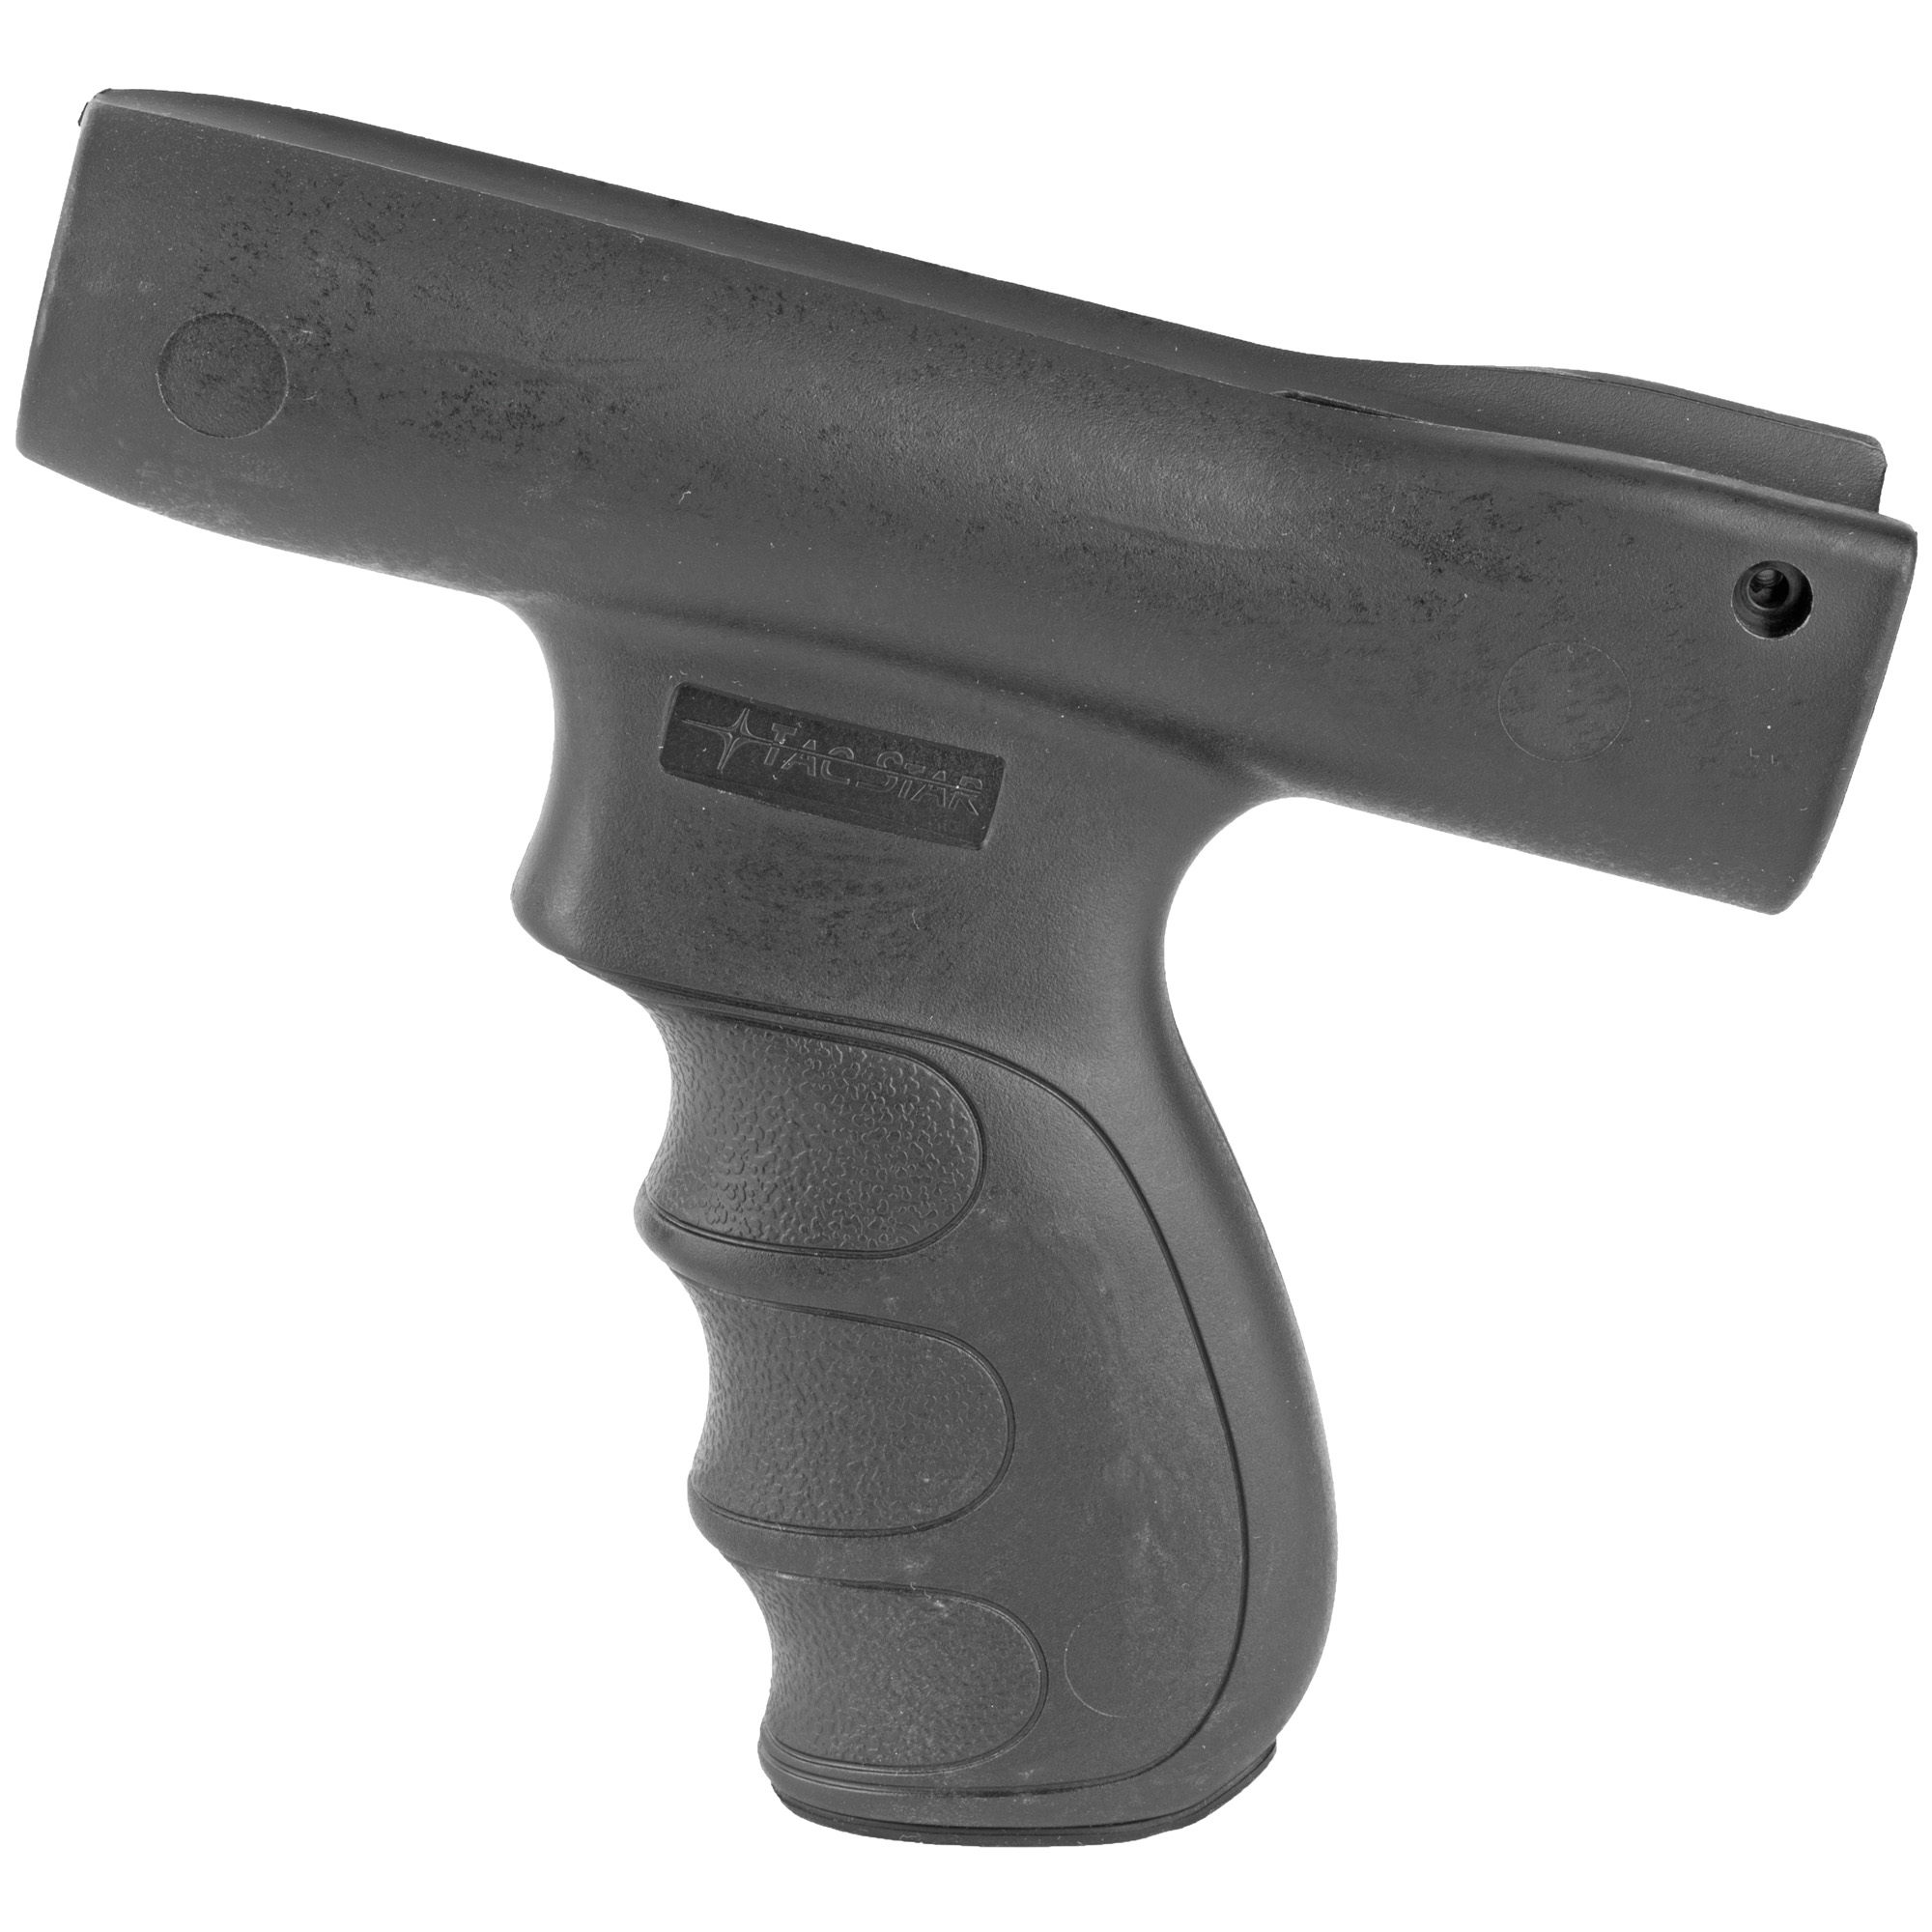 """The TacStar Shotgun Grips were designed with the proper width"""" rearward angle and back swell to distribute recoil energy evenly into both hands resulting in greater speed"""" accuracy and control when shooting. Injection-molded from a high-impact ABS polymer"""" Tactical Shotgun Grip Sets include all the necessary hardware for quick and easy installation and require no alterations to the shotgun. 12 Gauge only. Fits Mossberg 500"""" 590"""" 600 and Maverick. Front grip only."""